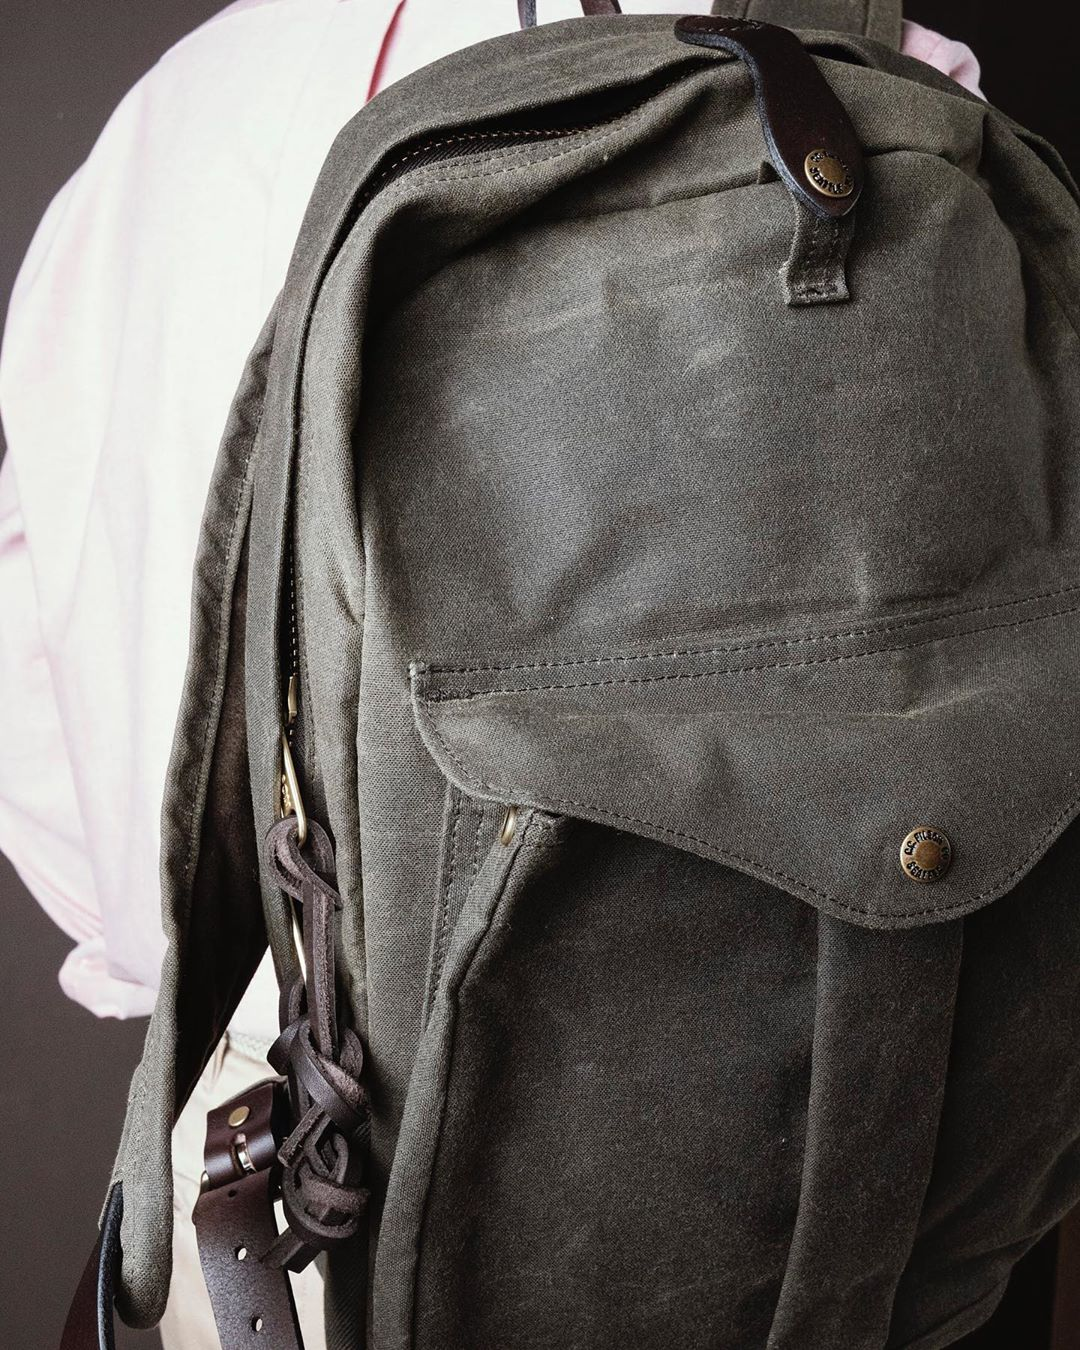 Journeyman Backpack - The Signet Store